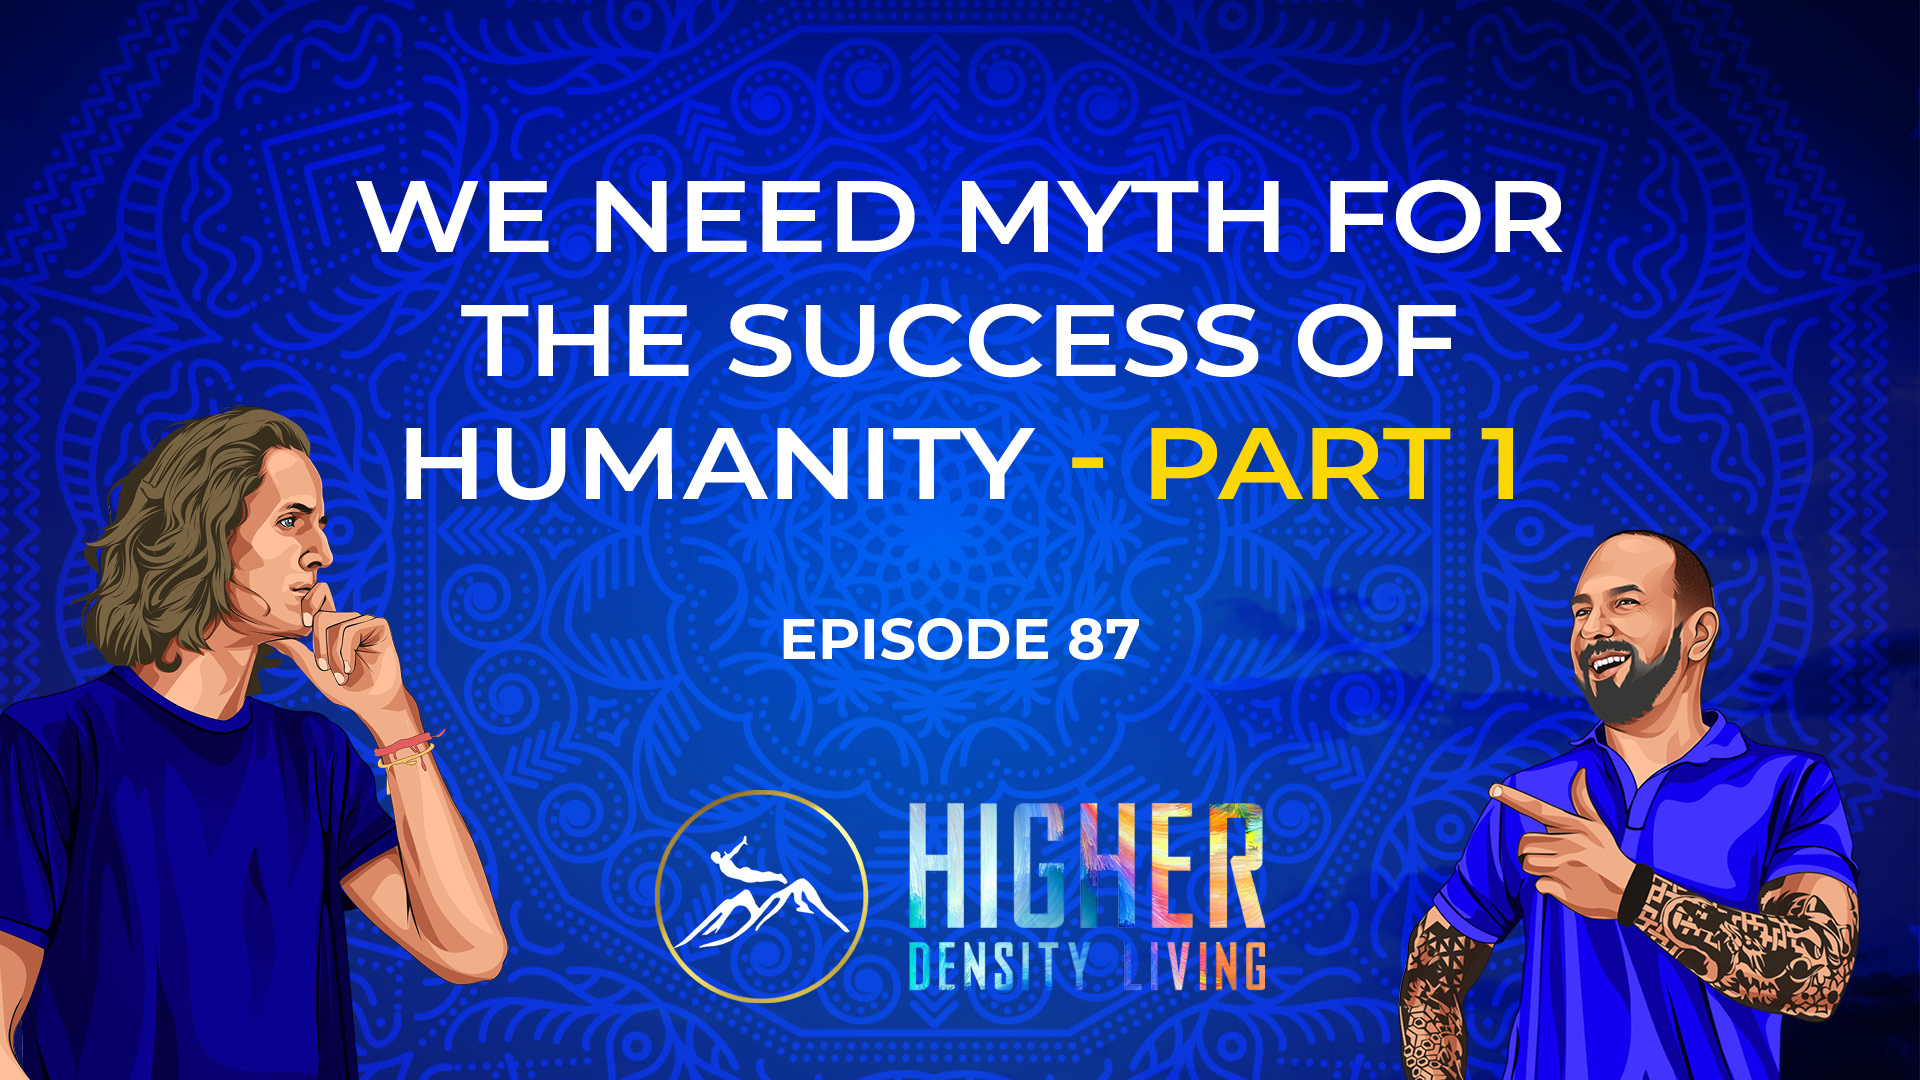 We Need Myth for the Success of Humanity